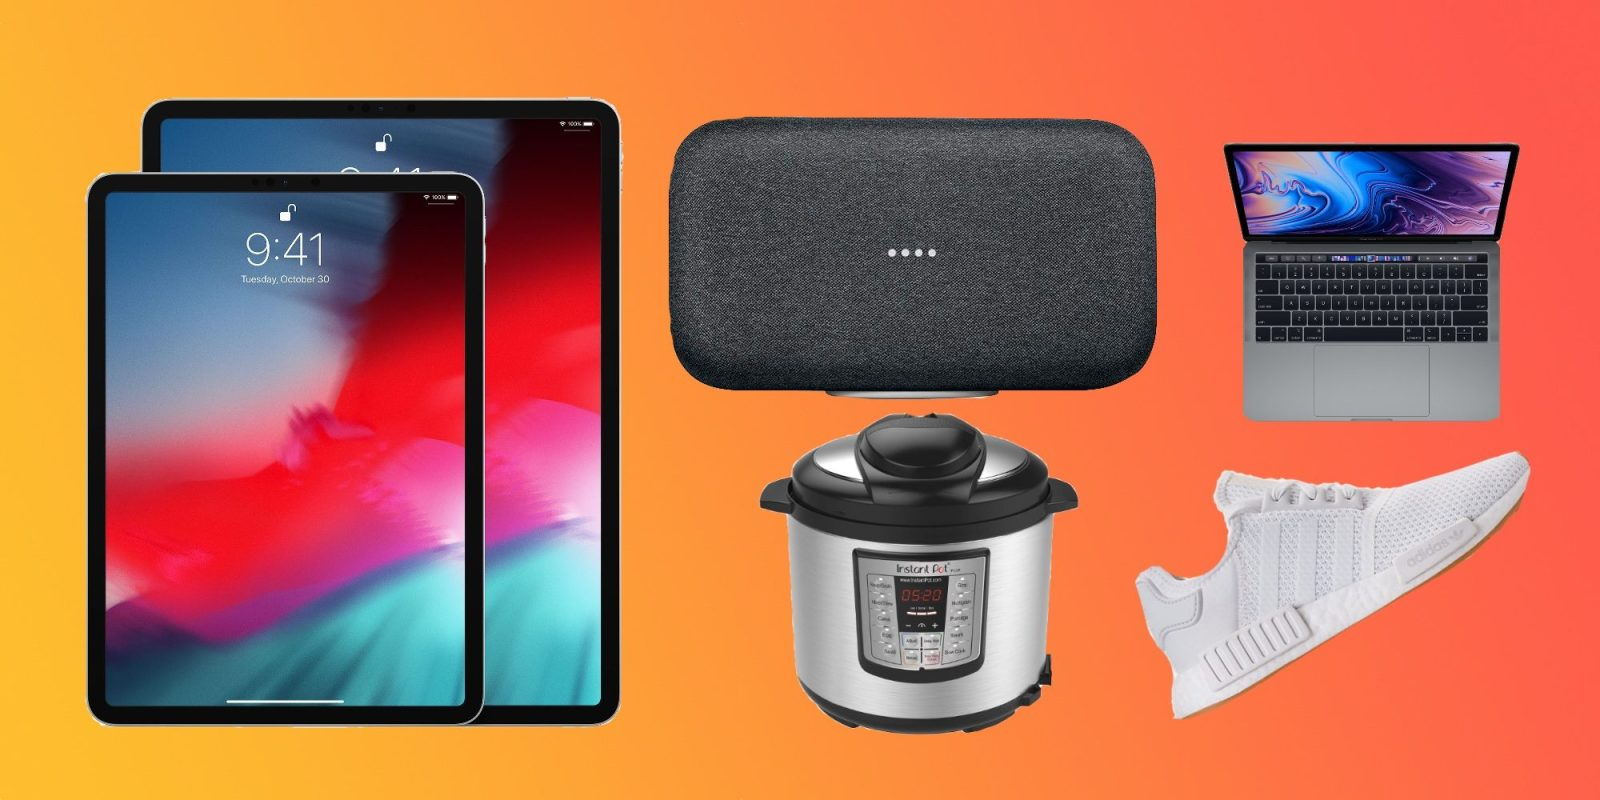 Best Labor Day Deals: Save on Apple, Google, smart home gear, home goods, more